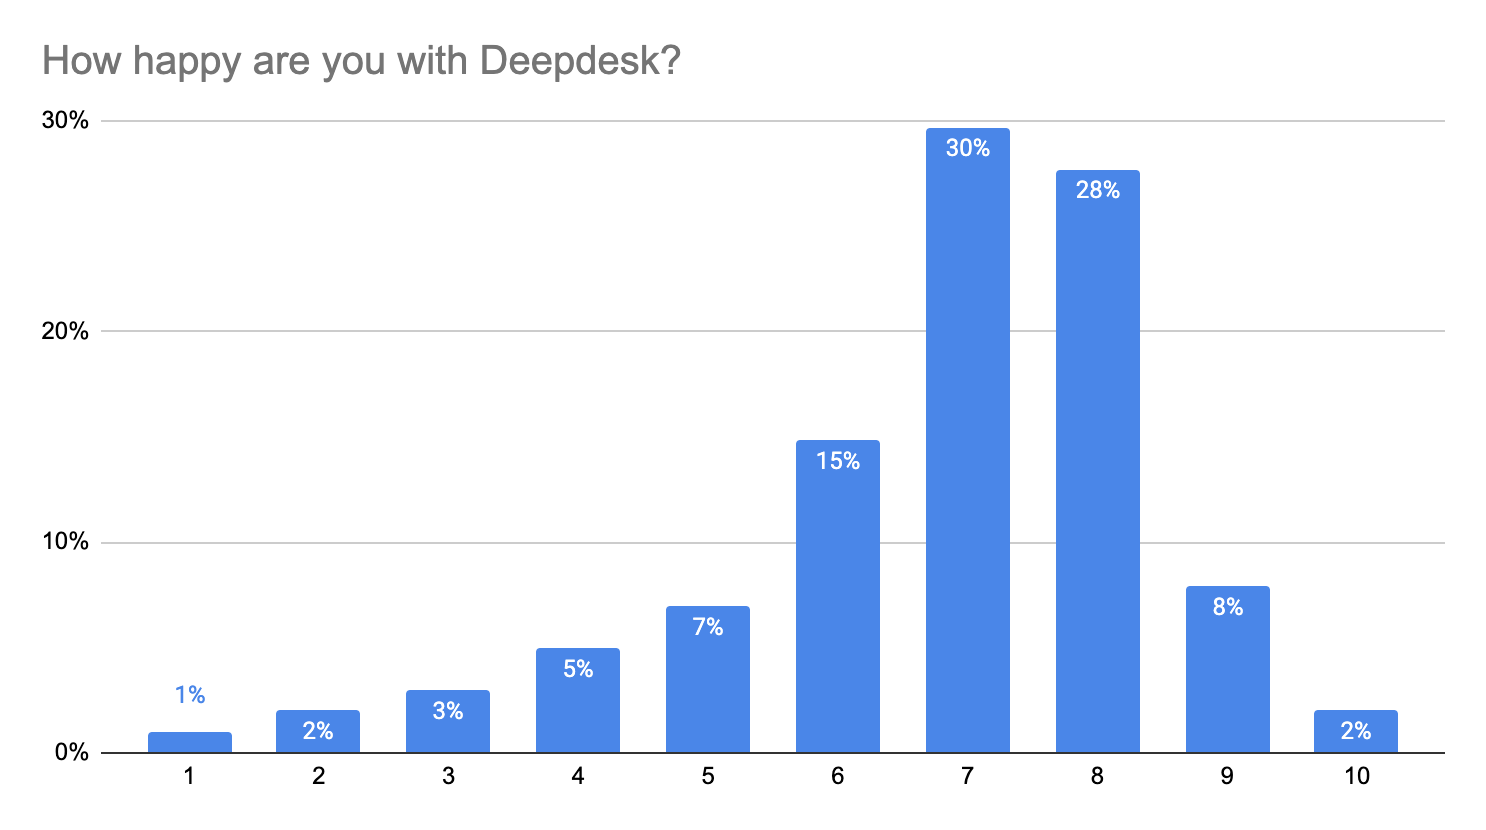 Most contact center agents are happy with Deepdesk